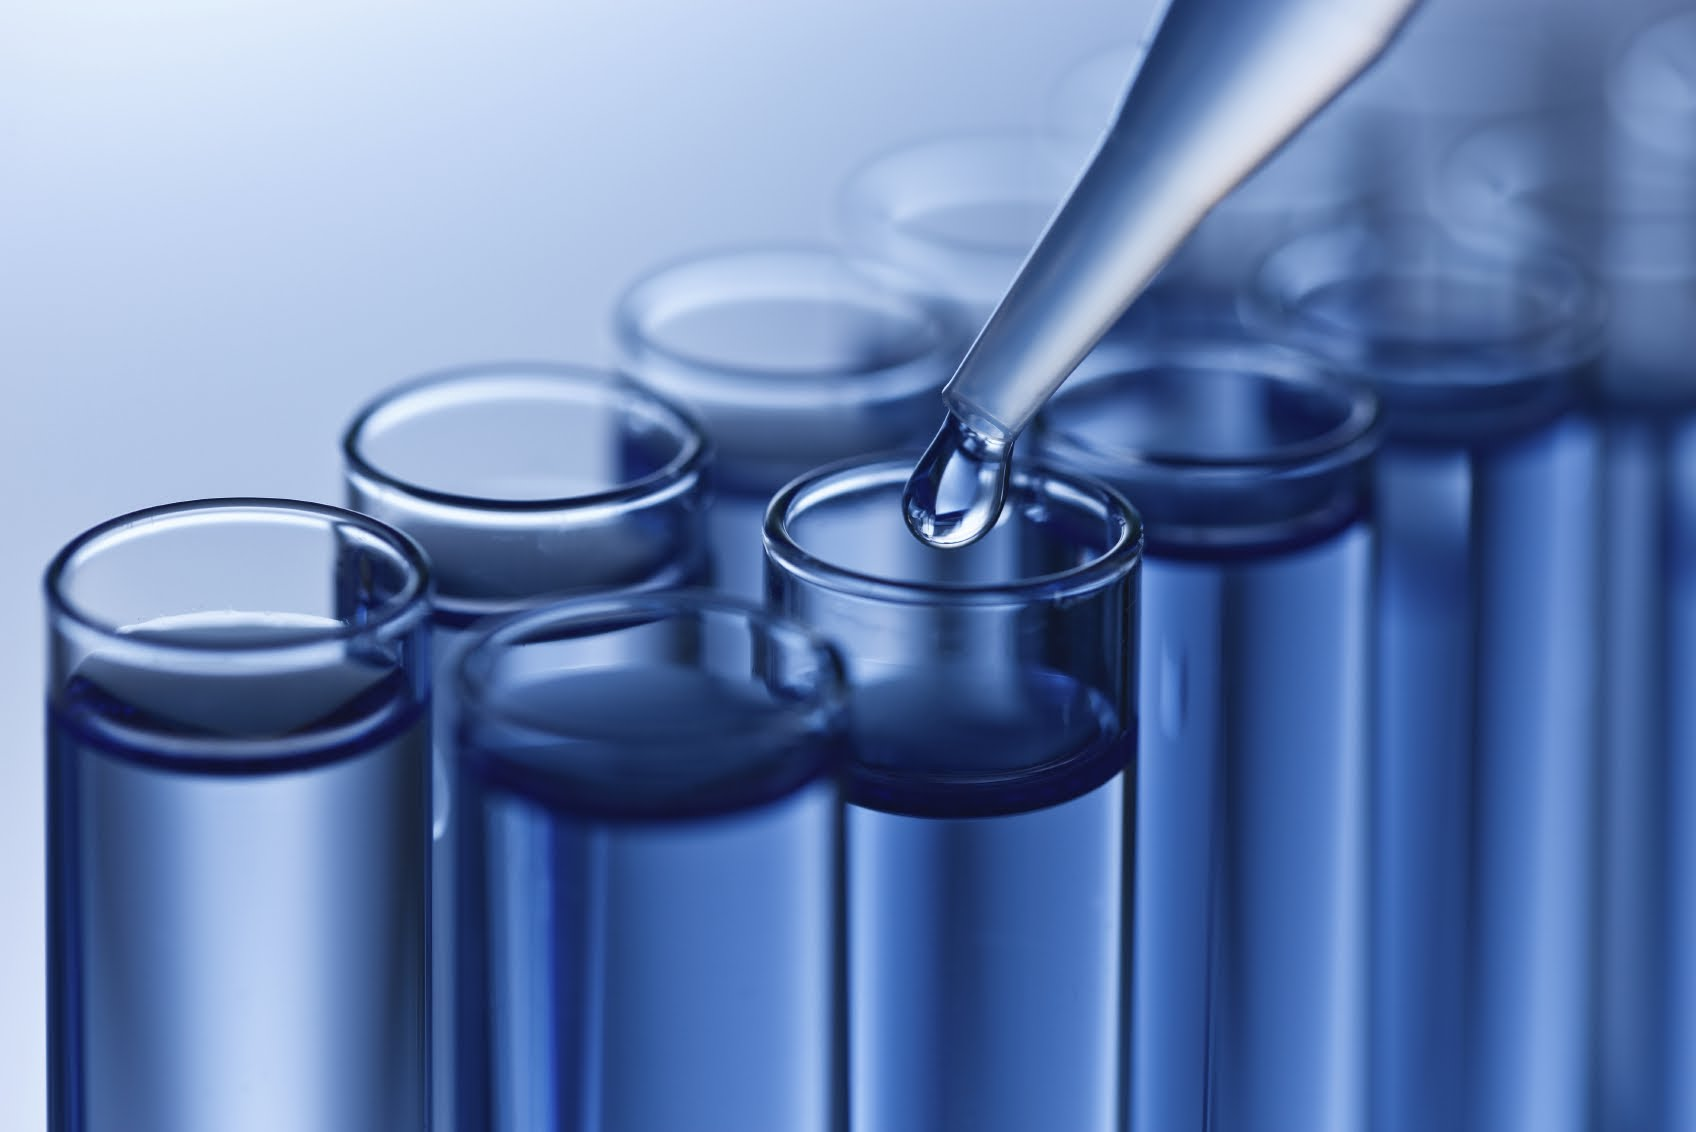 Get 10% Off on Protein Fluids Test at Spandana Diagnostic Laboratory